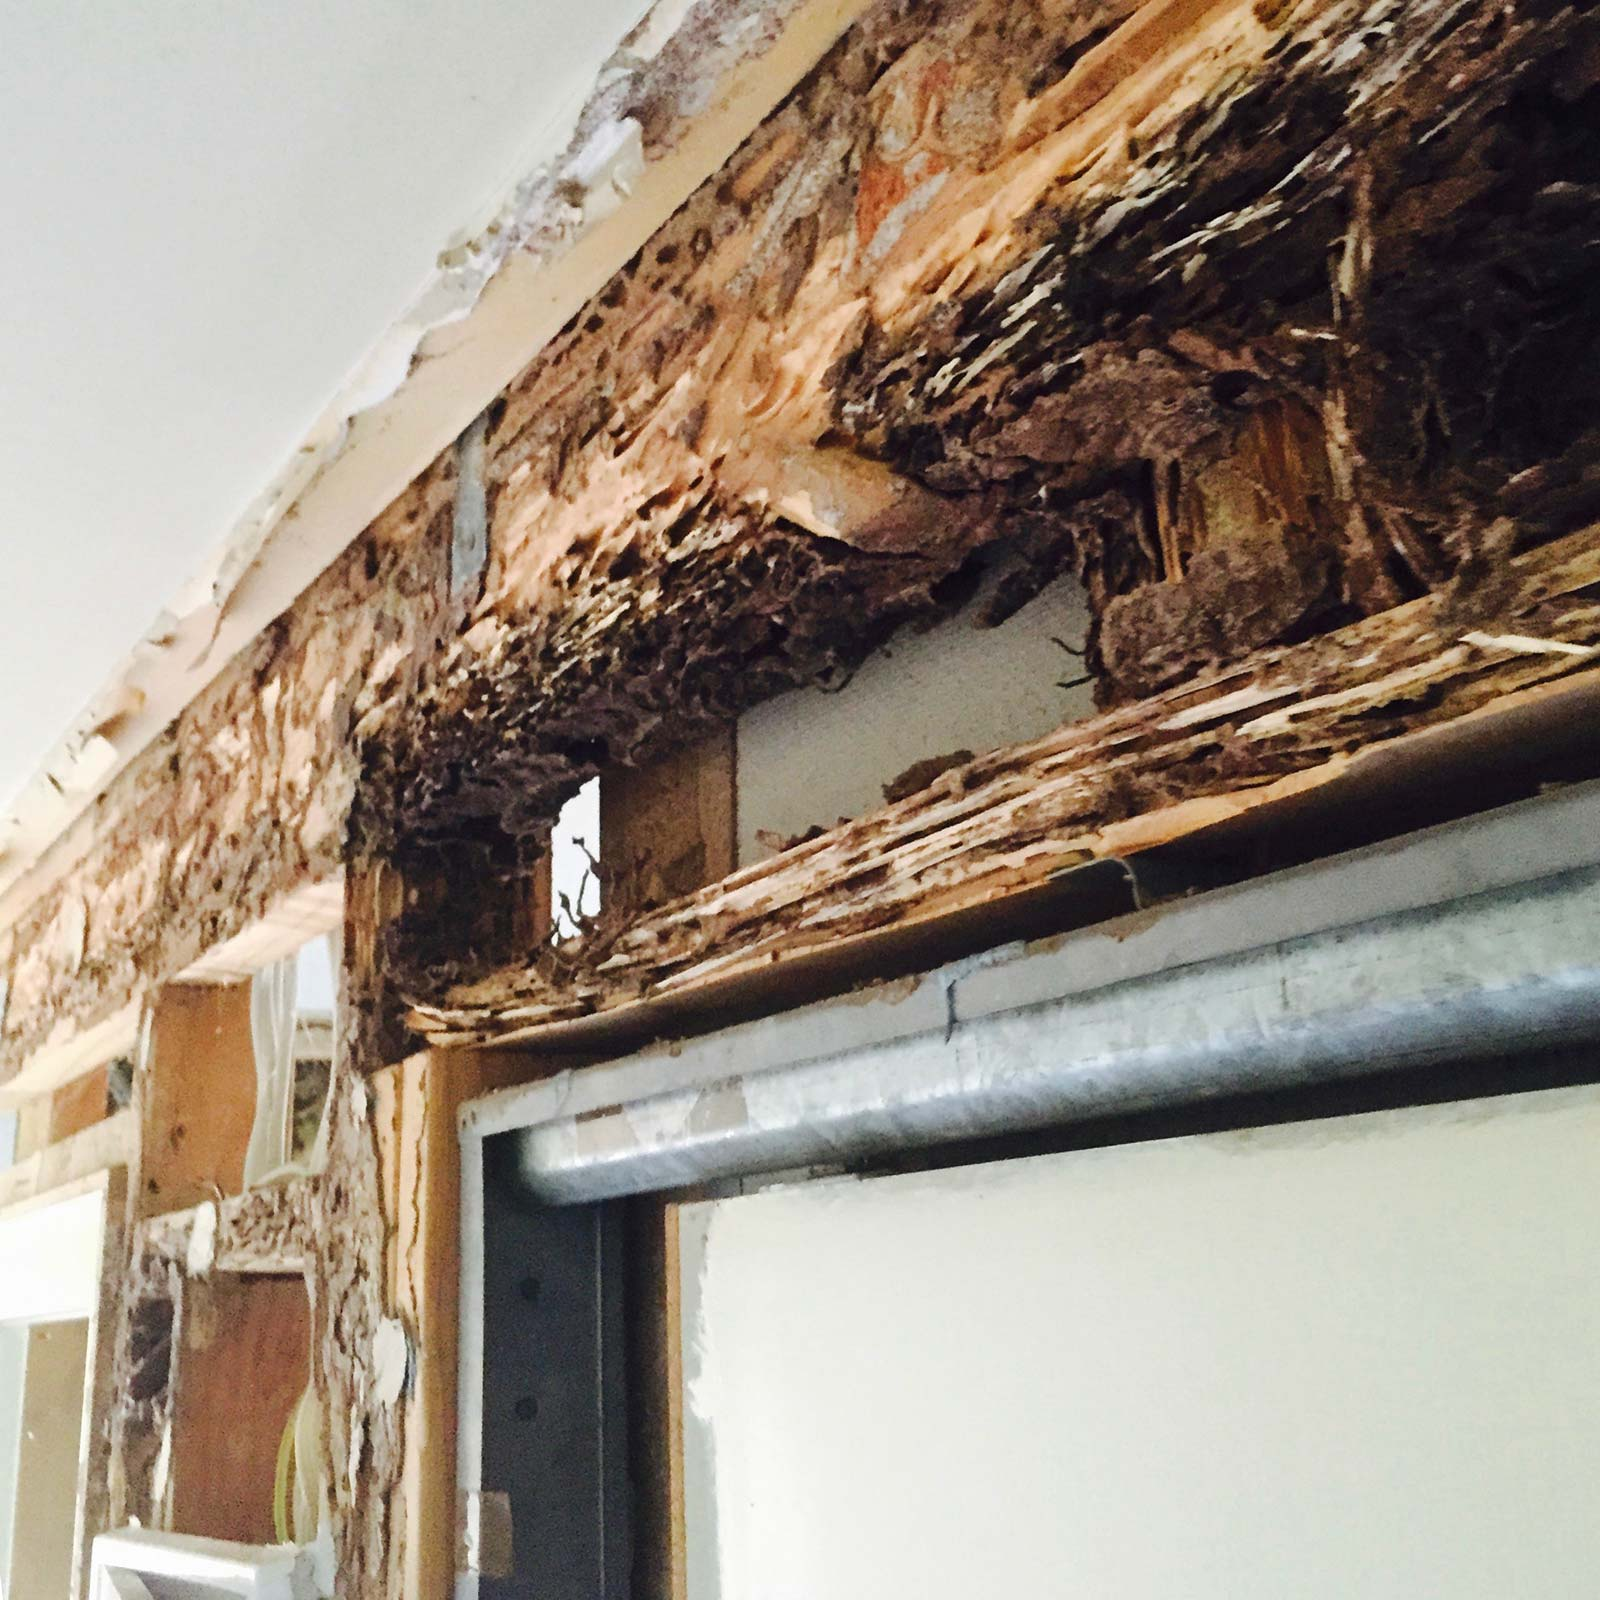 Termite damage to homes